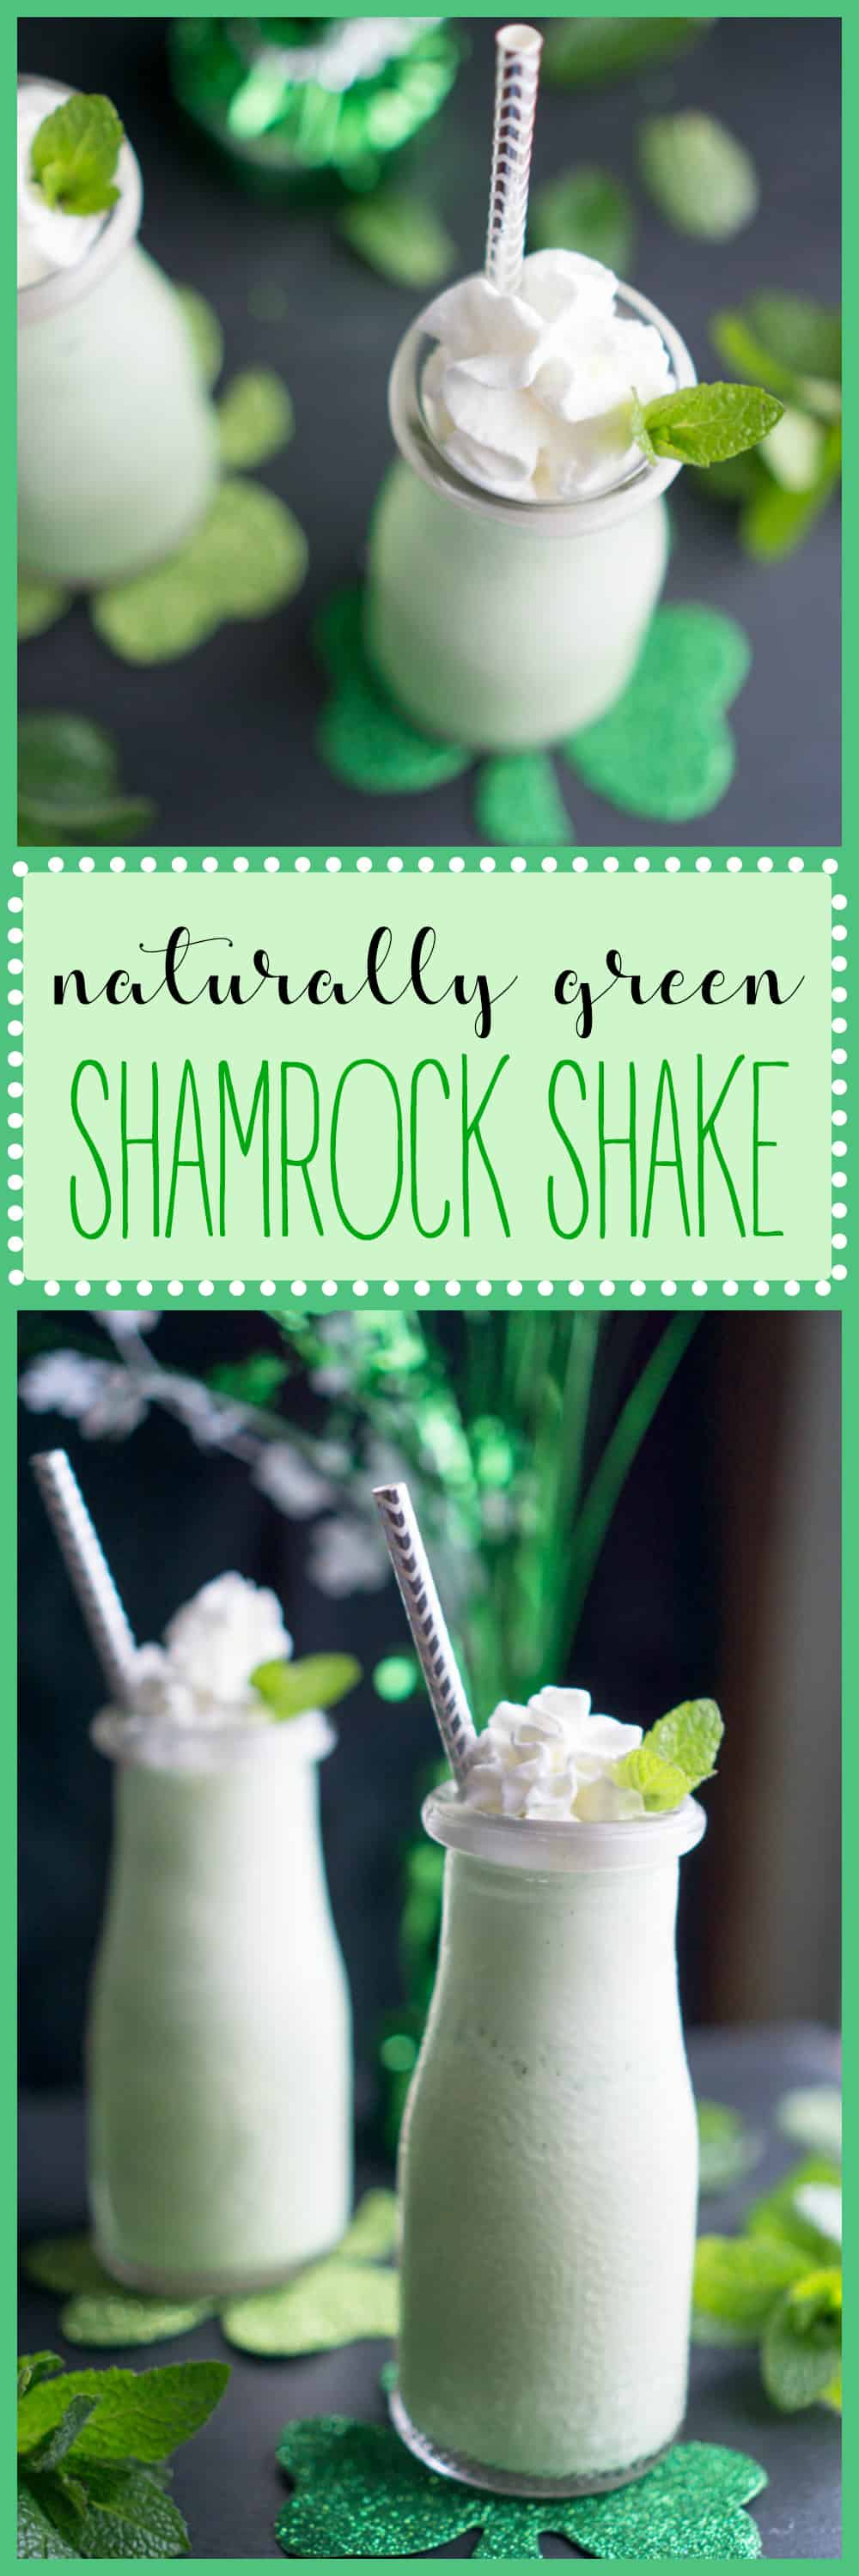 Naturally Green Shamrock Shake - ice cream shake made with fresh mint. Great way to avoid food dyes while celebrating the Irish holiday.